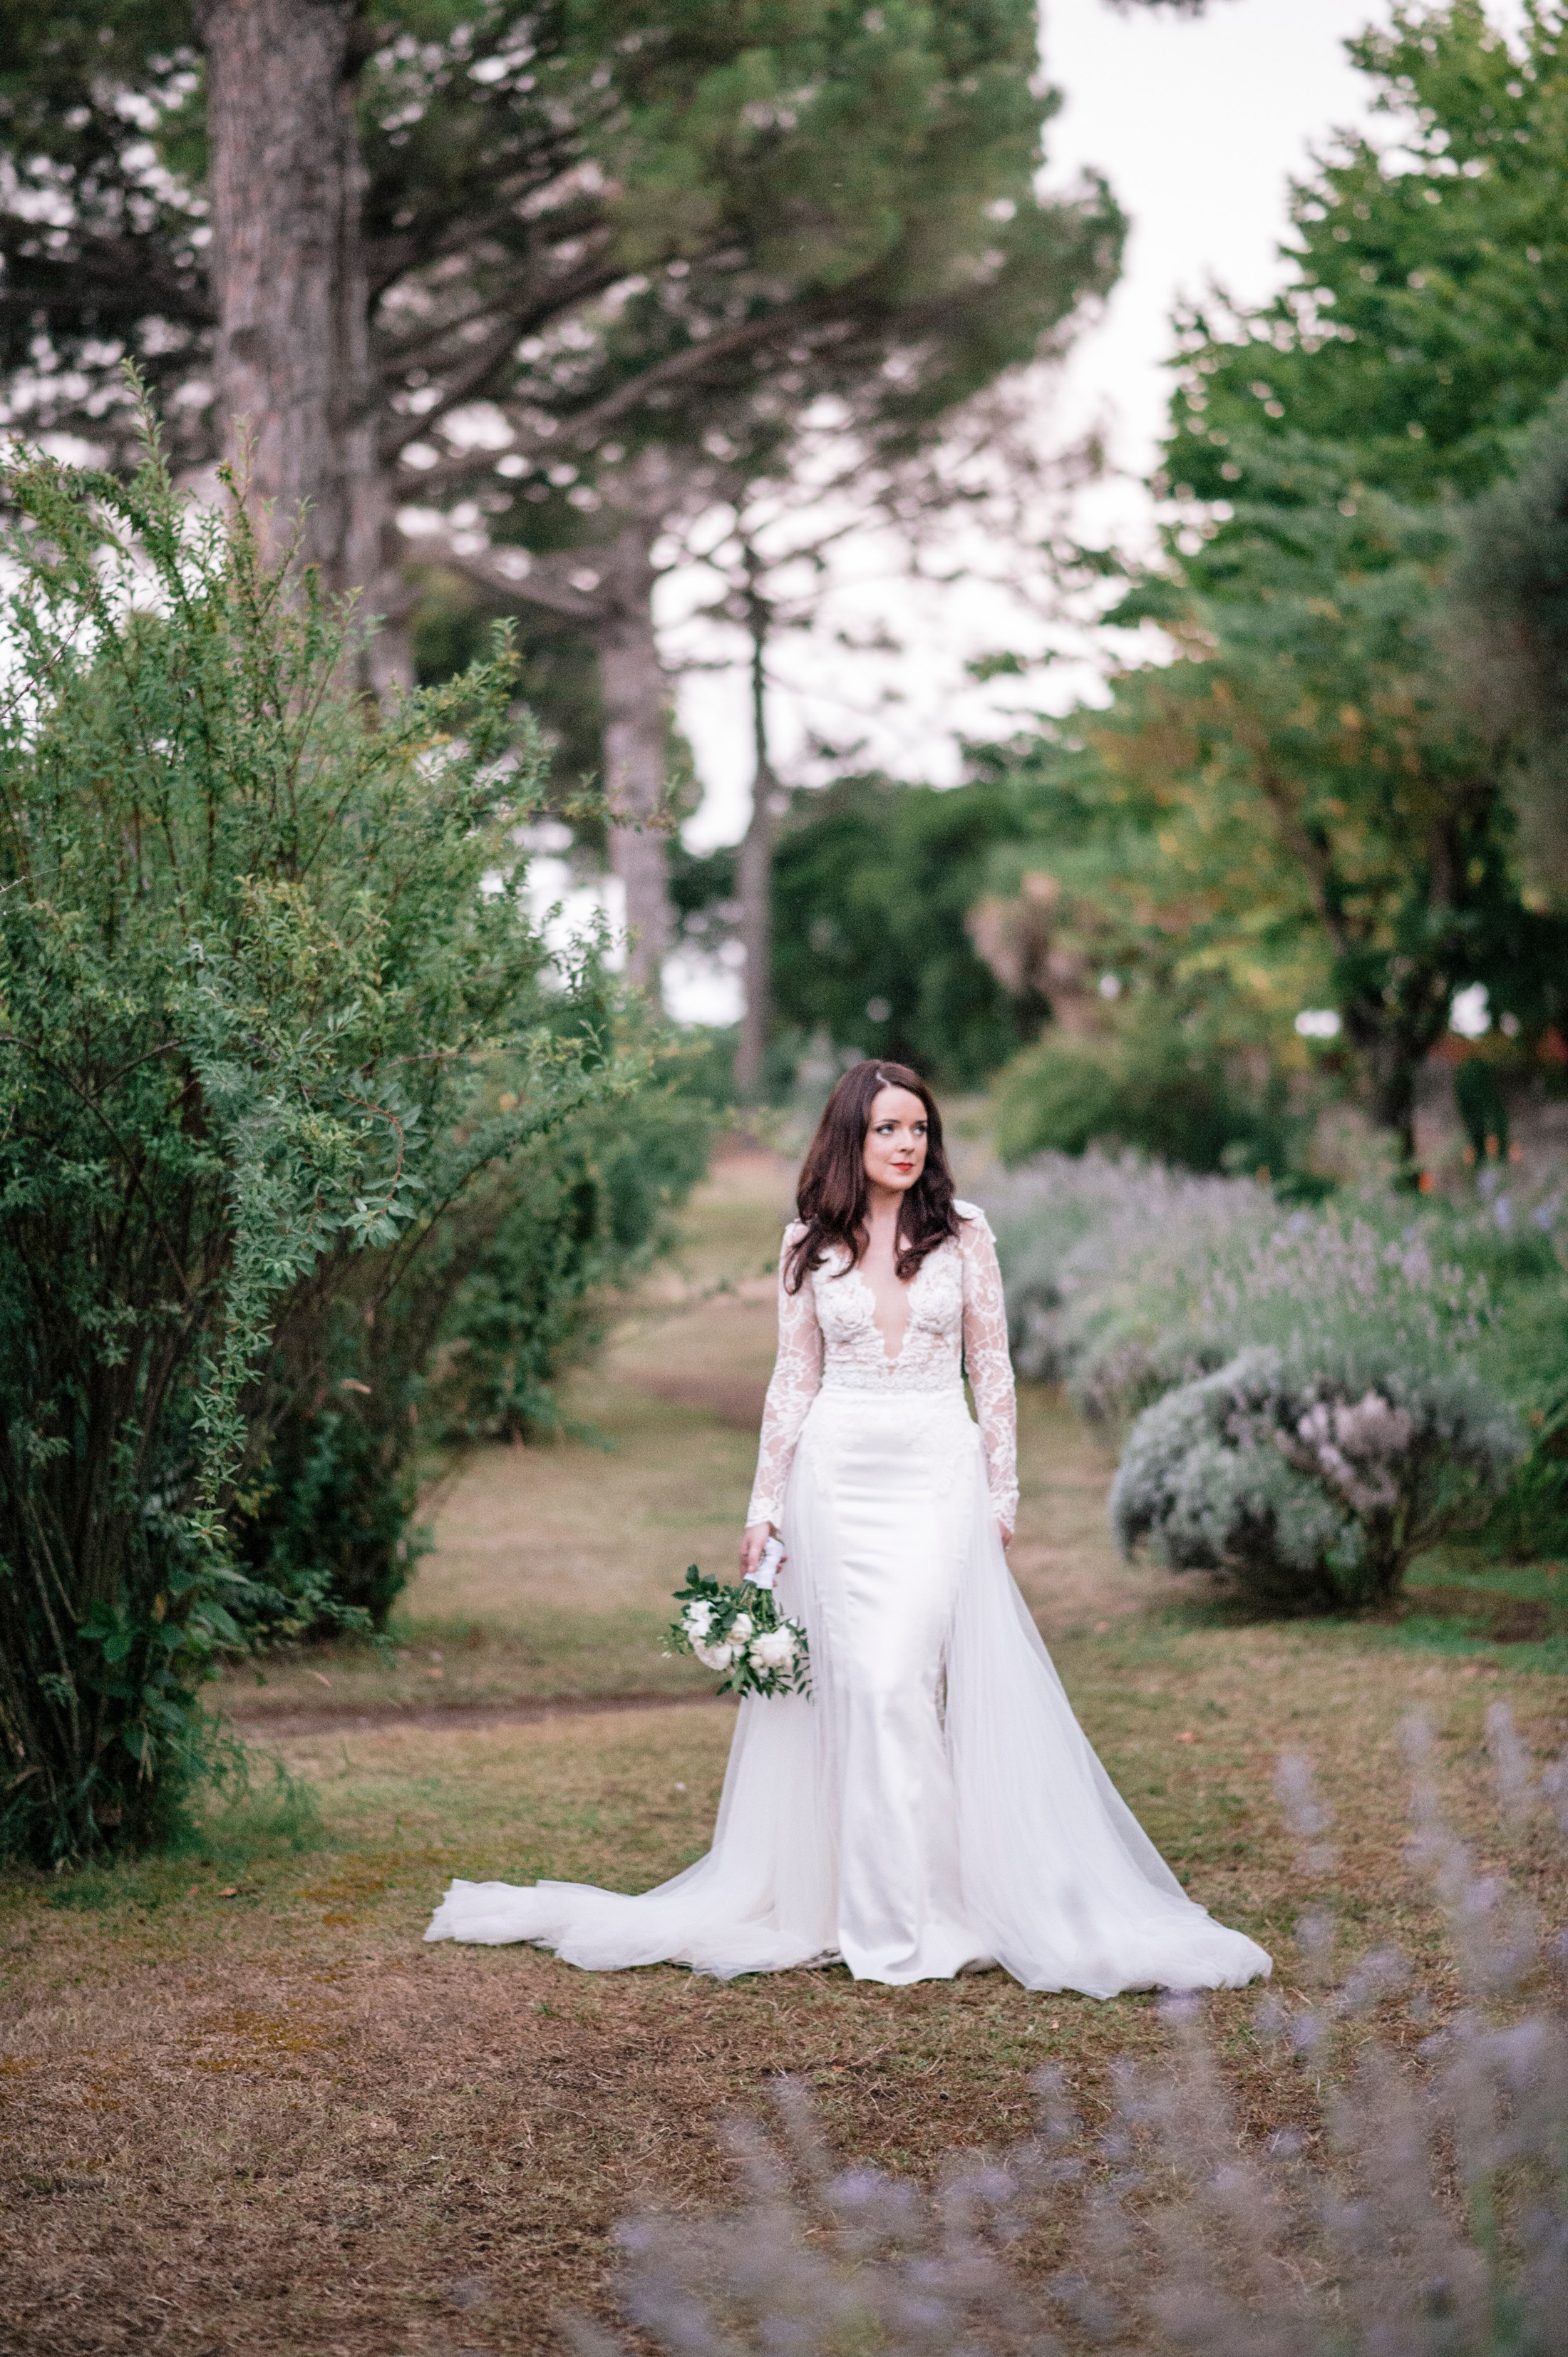 bride's portrait in the gardens pos villa cimbrone ravello